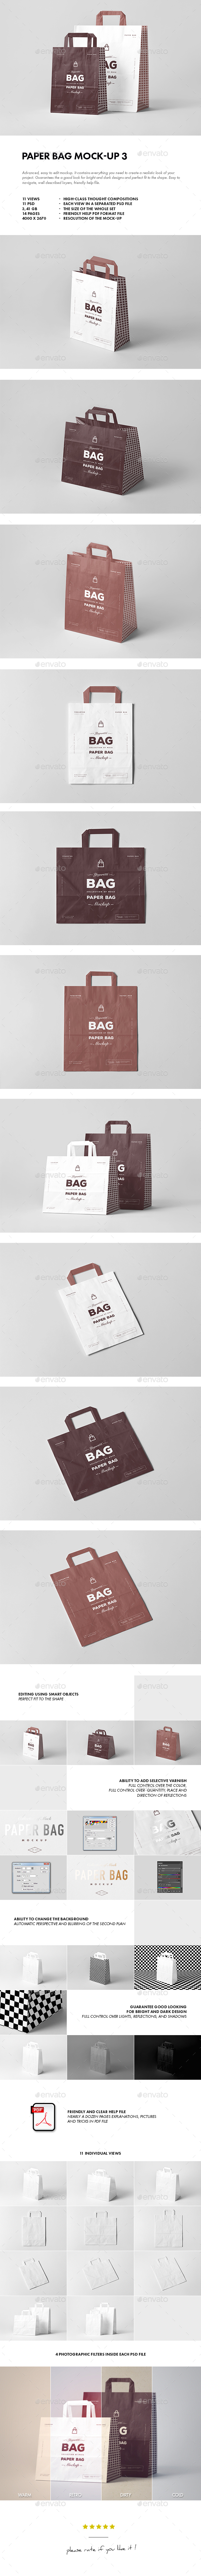 Paper Bag Mock-up 3 - Miscellaneous Packaging